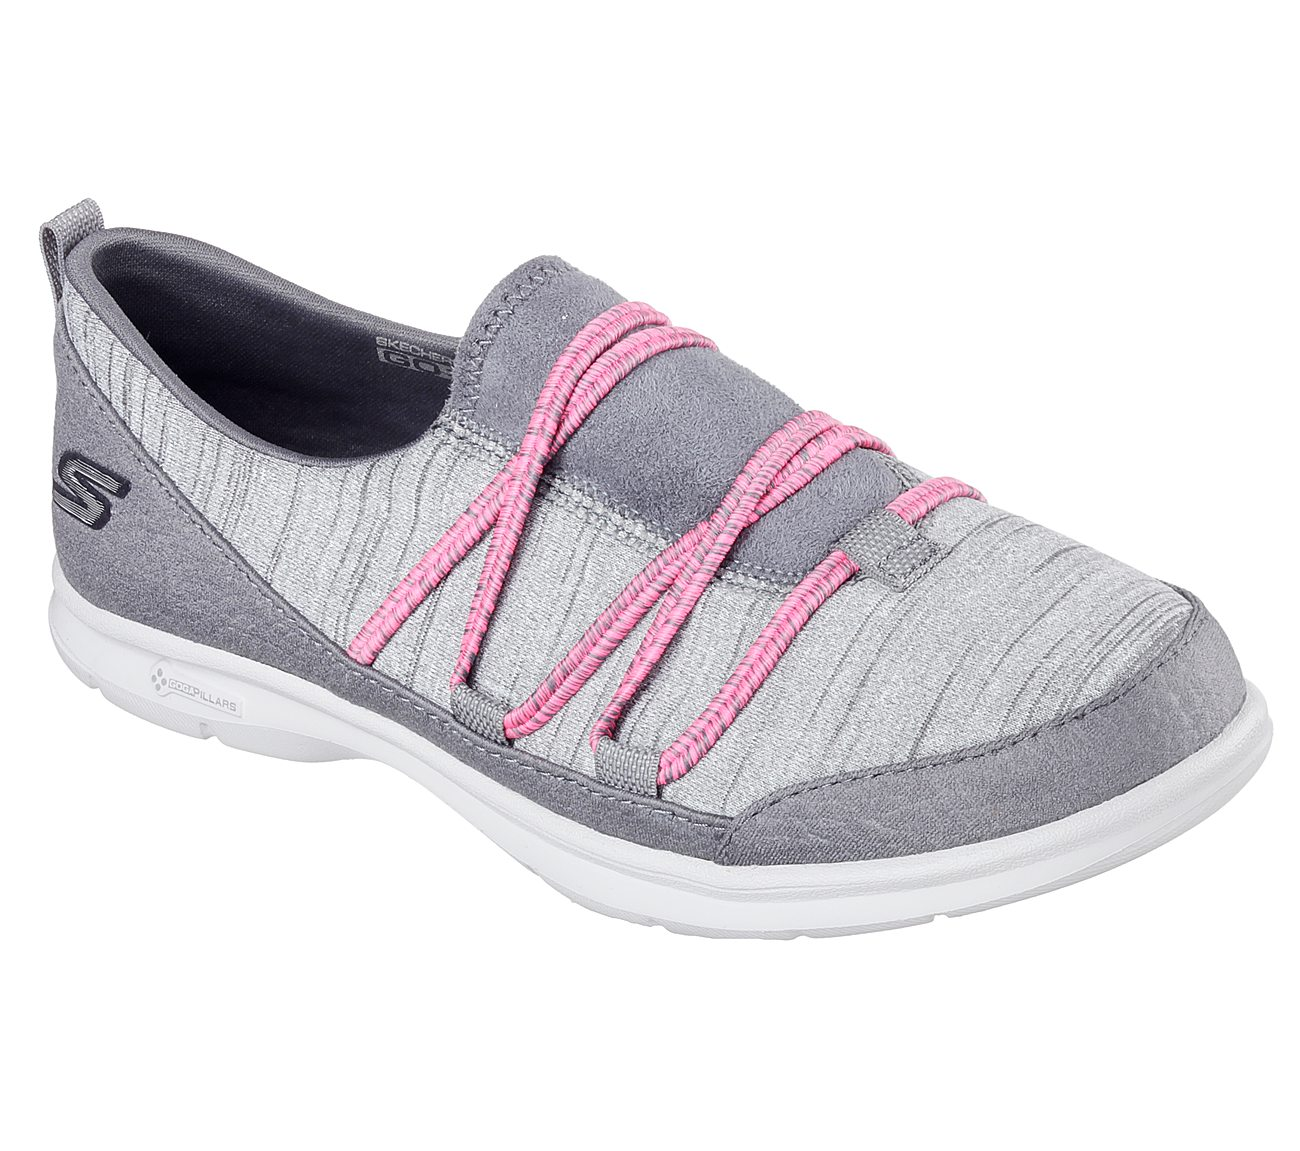 Womens Athletic Shoes skechers performance gray pink go step sway mq5j56y8